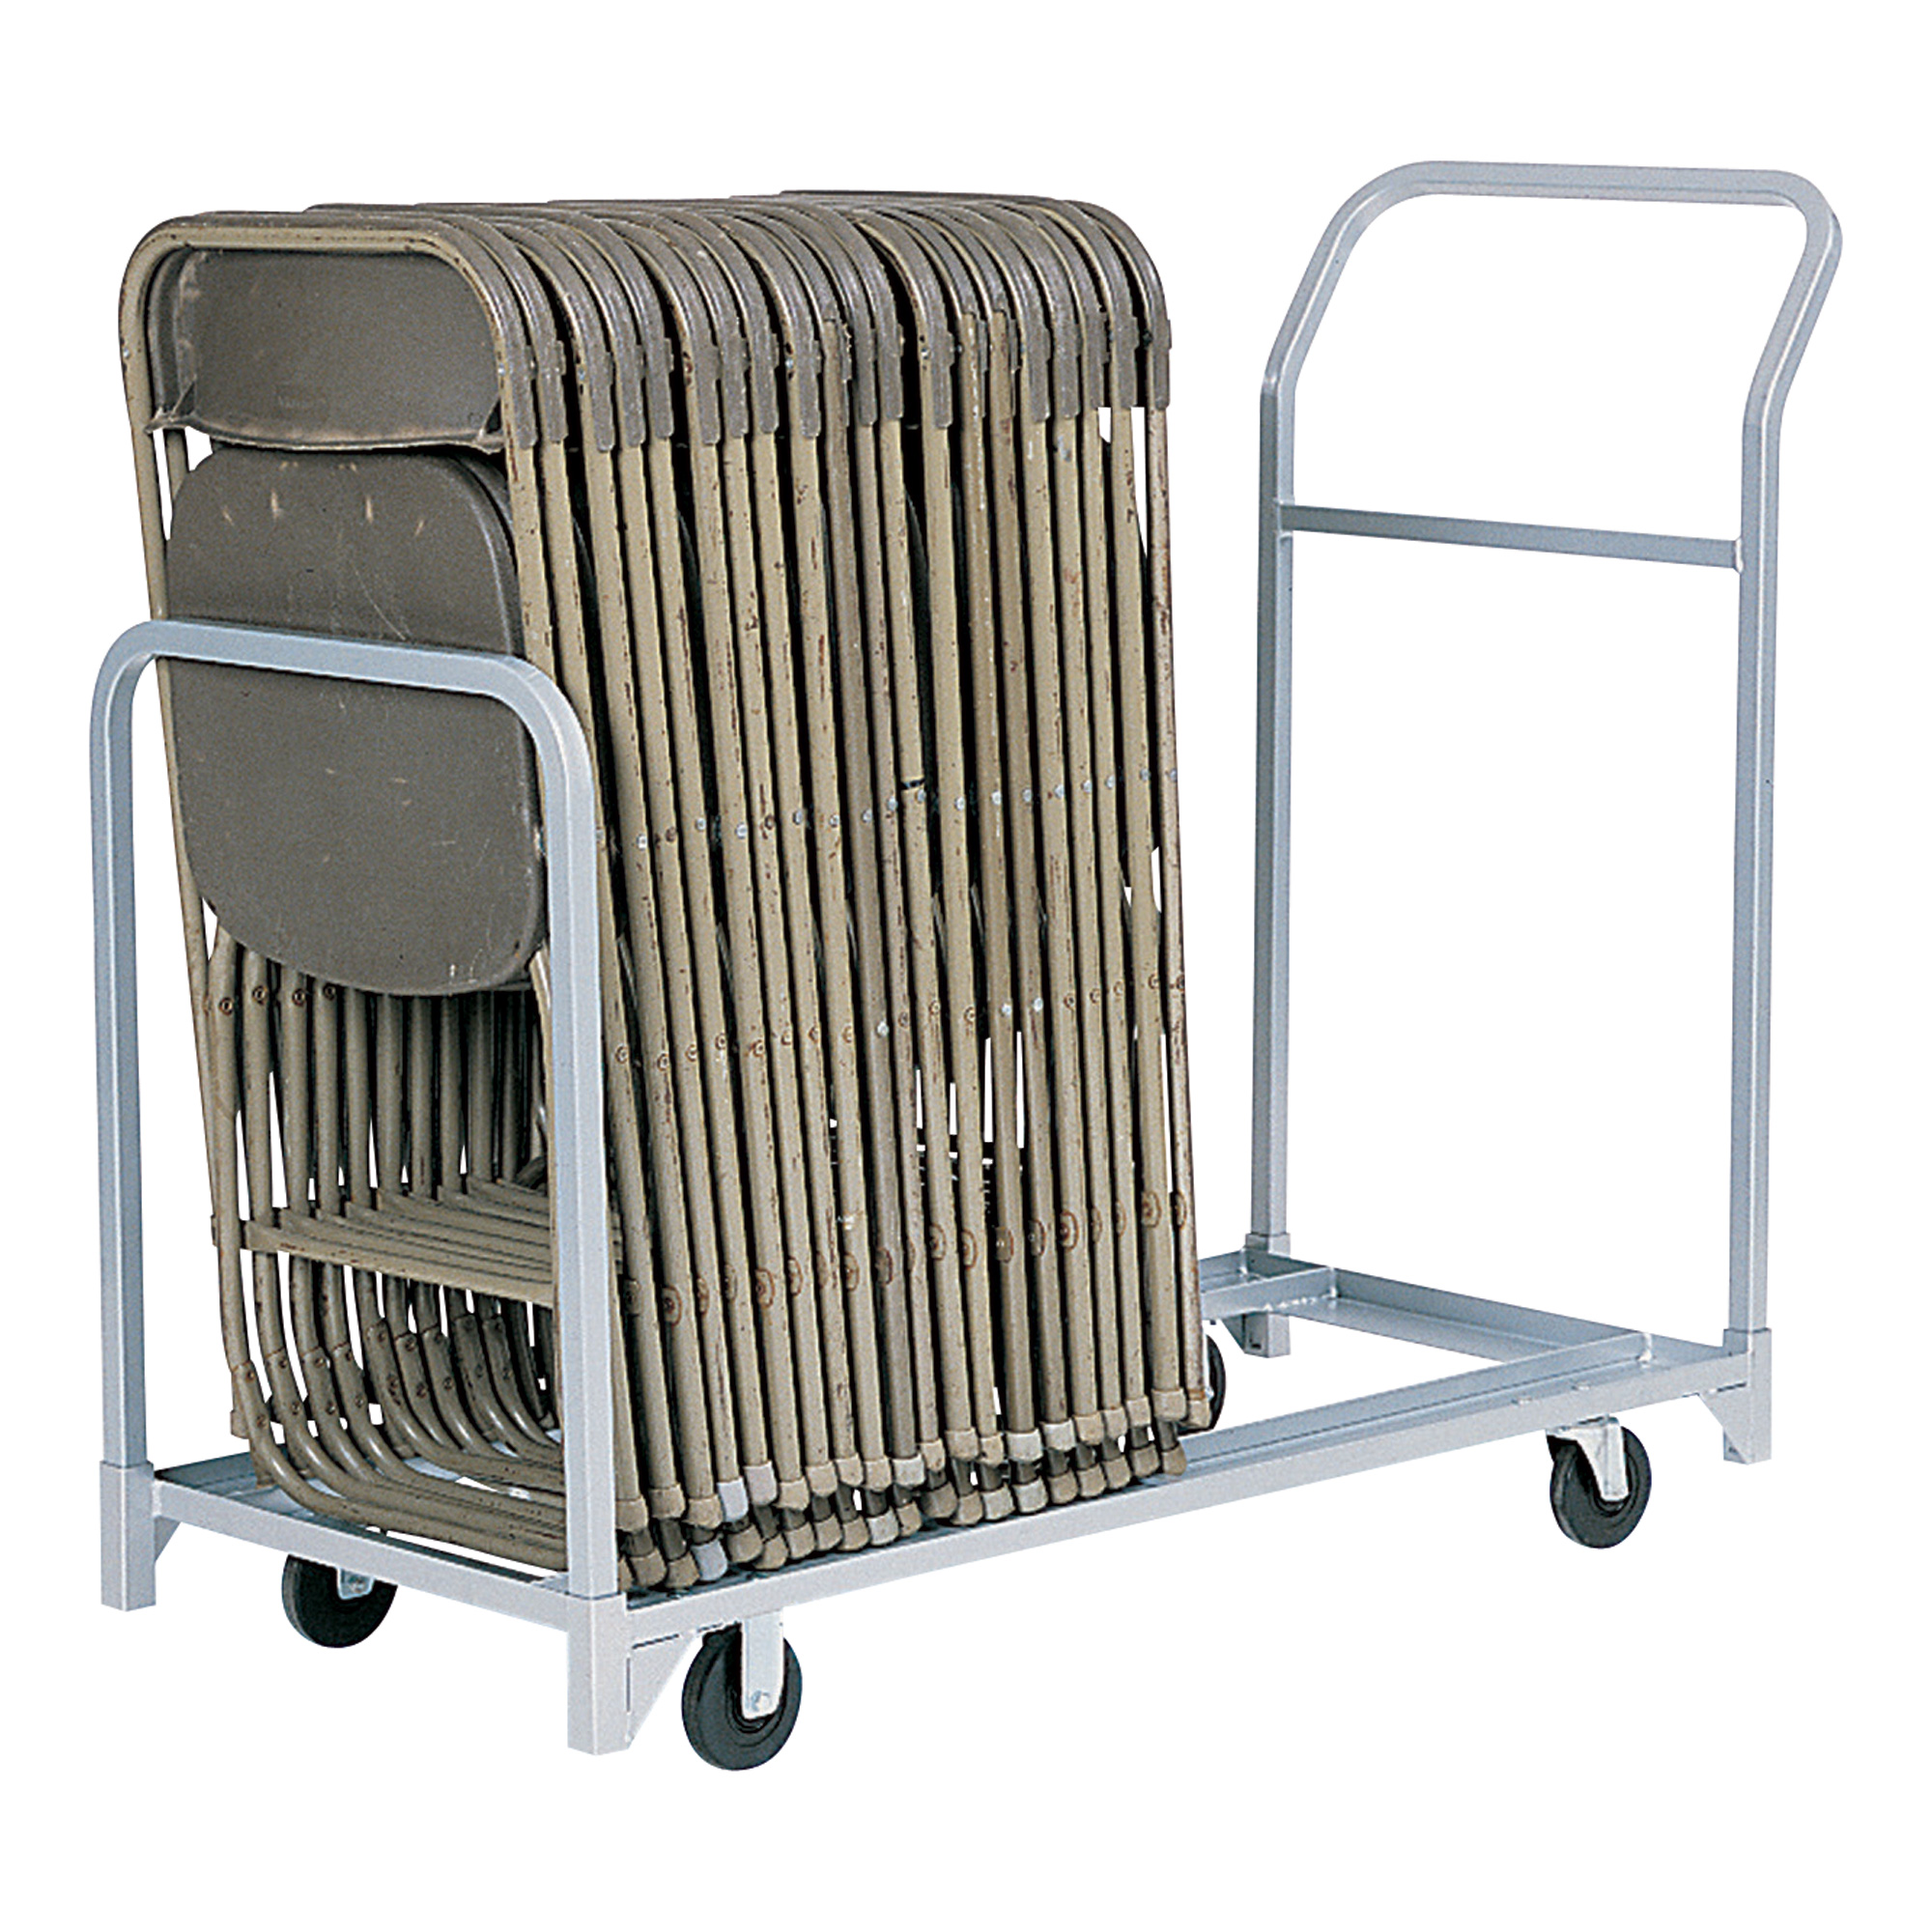 Inspirational Folding Chair Storage Rack Awesome